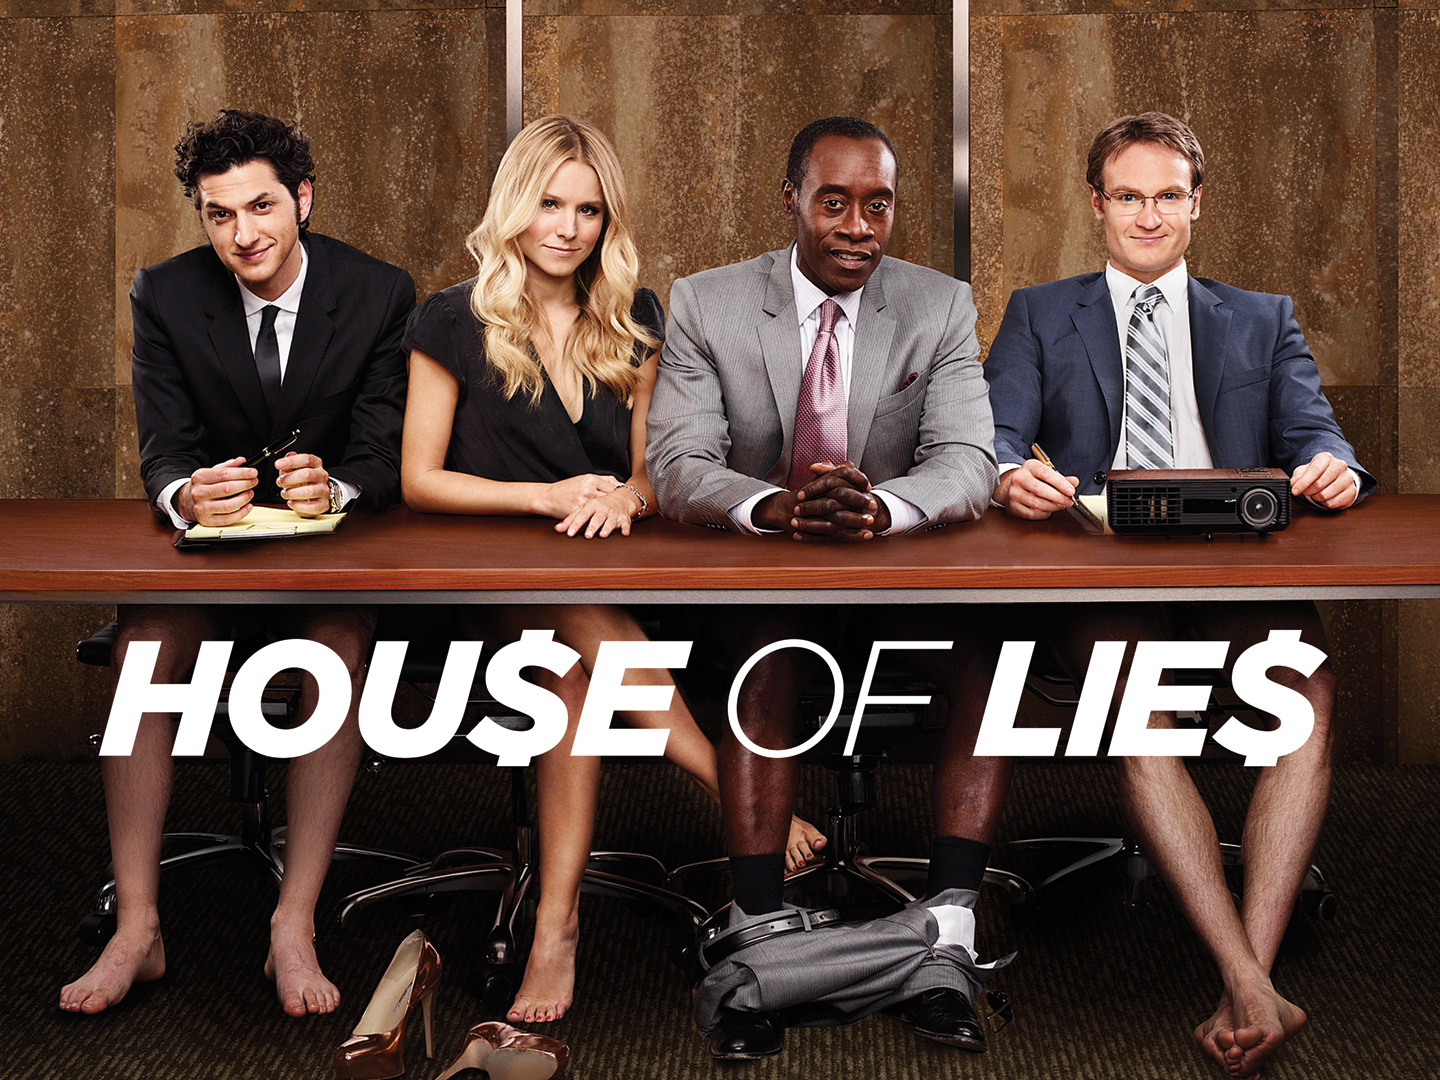 House of lies (tv show) hol